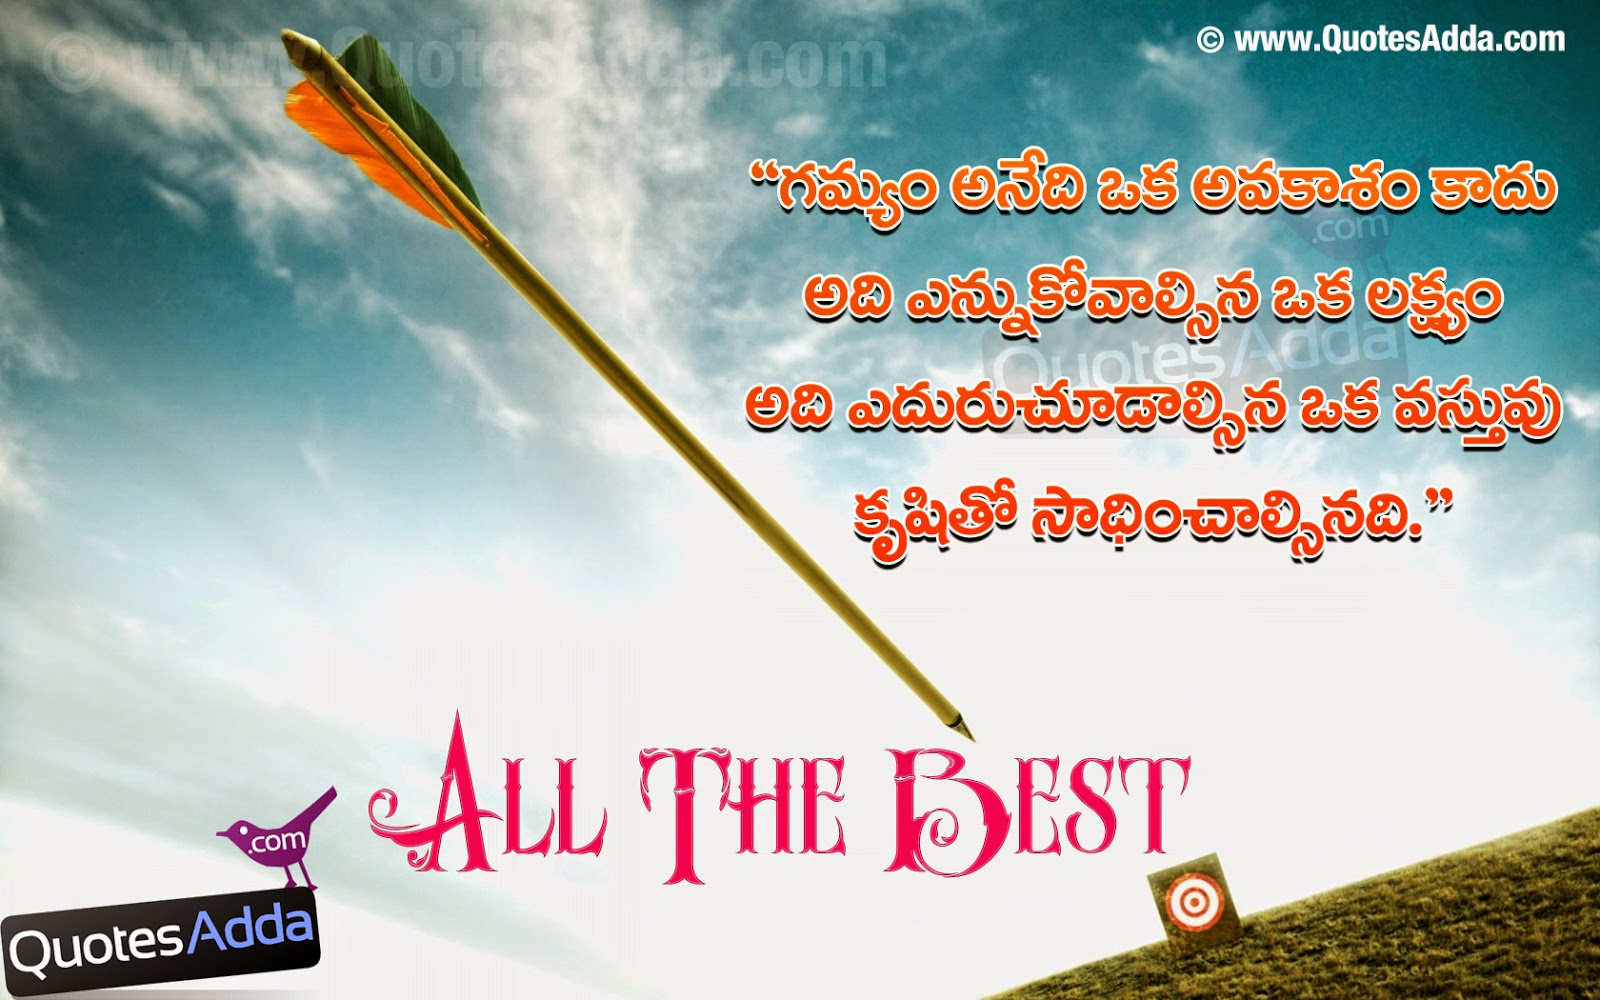 all the best telugu greetings online